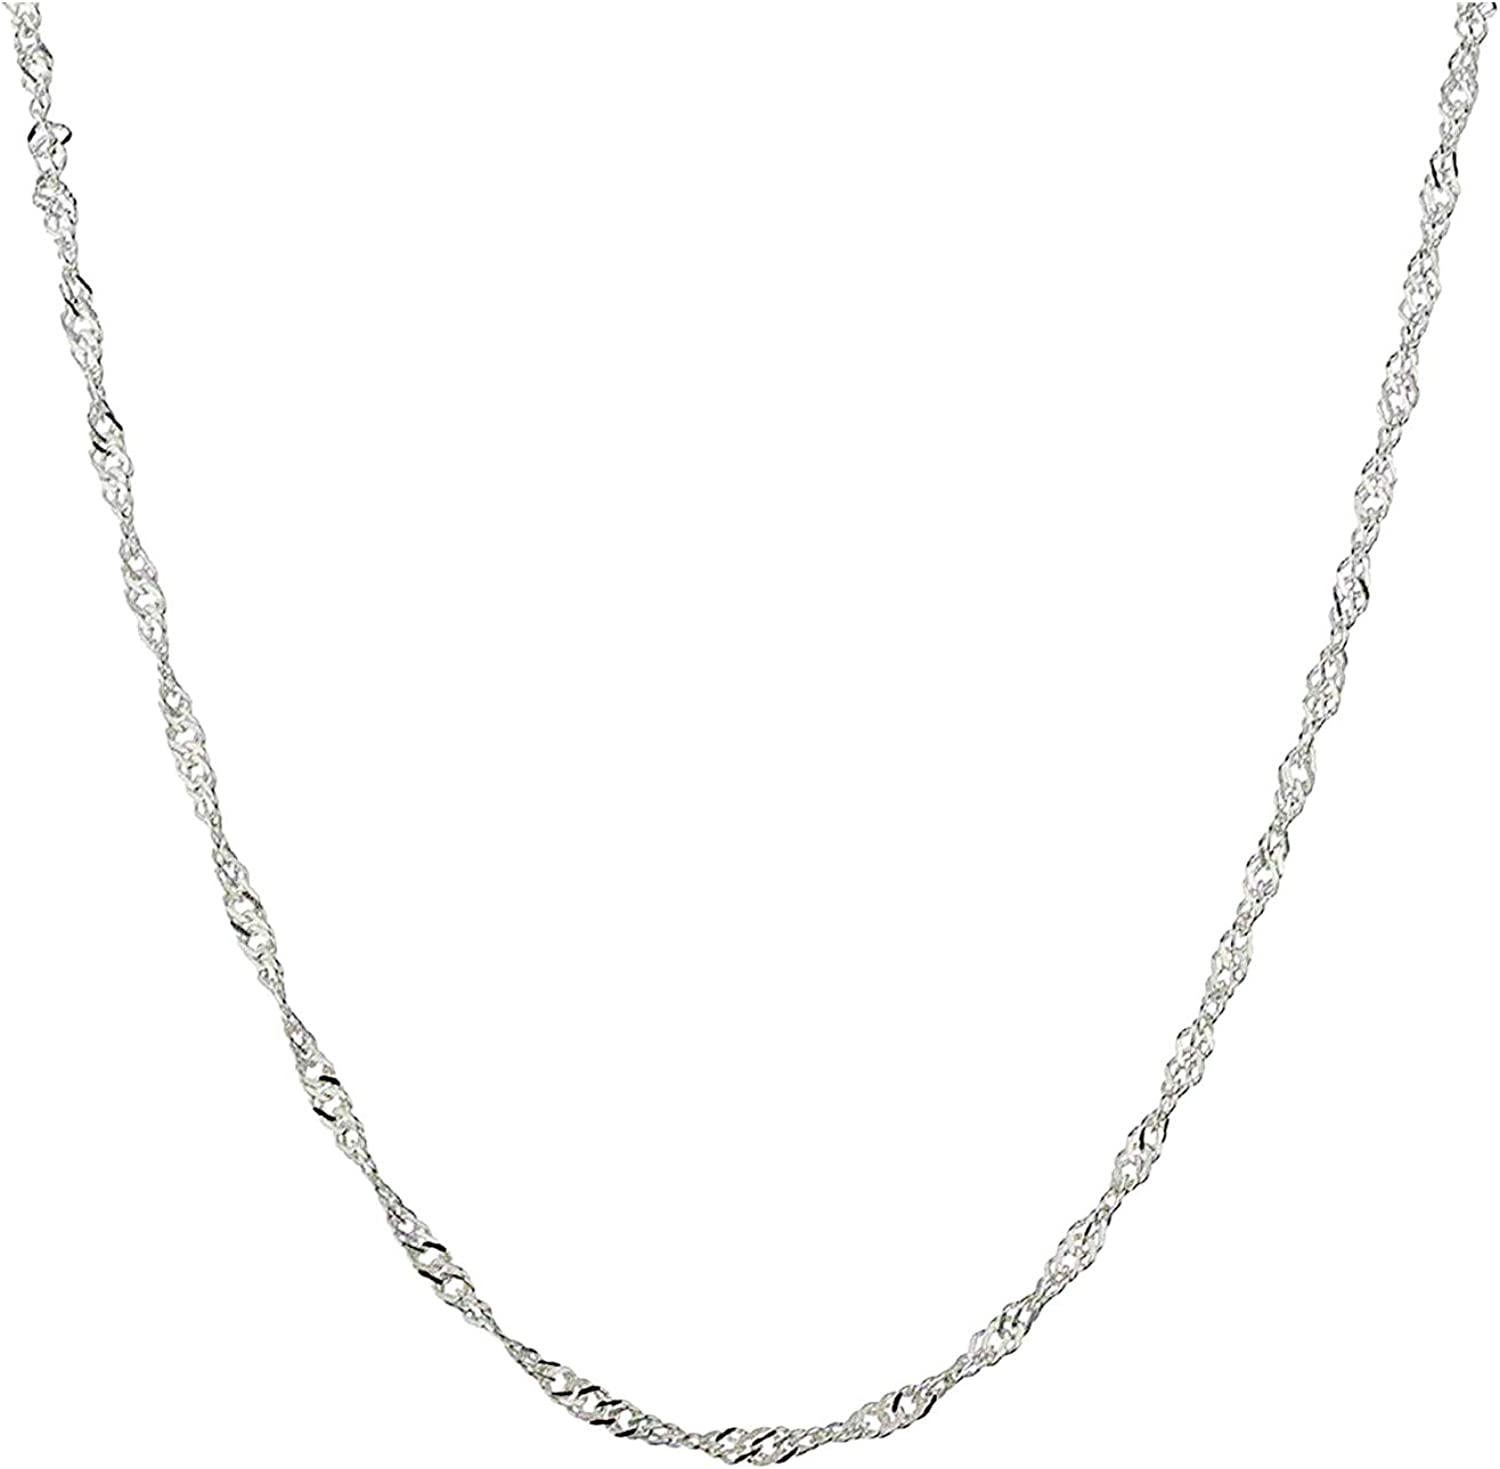 AmyRT Stainless Steel Chain New product Sales for sale type Necklace Silver Men 16